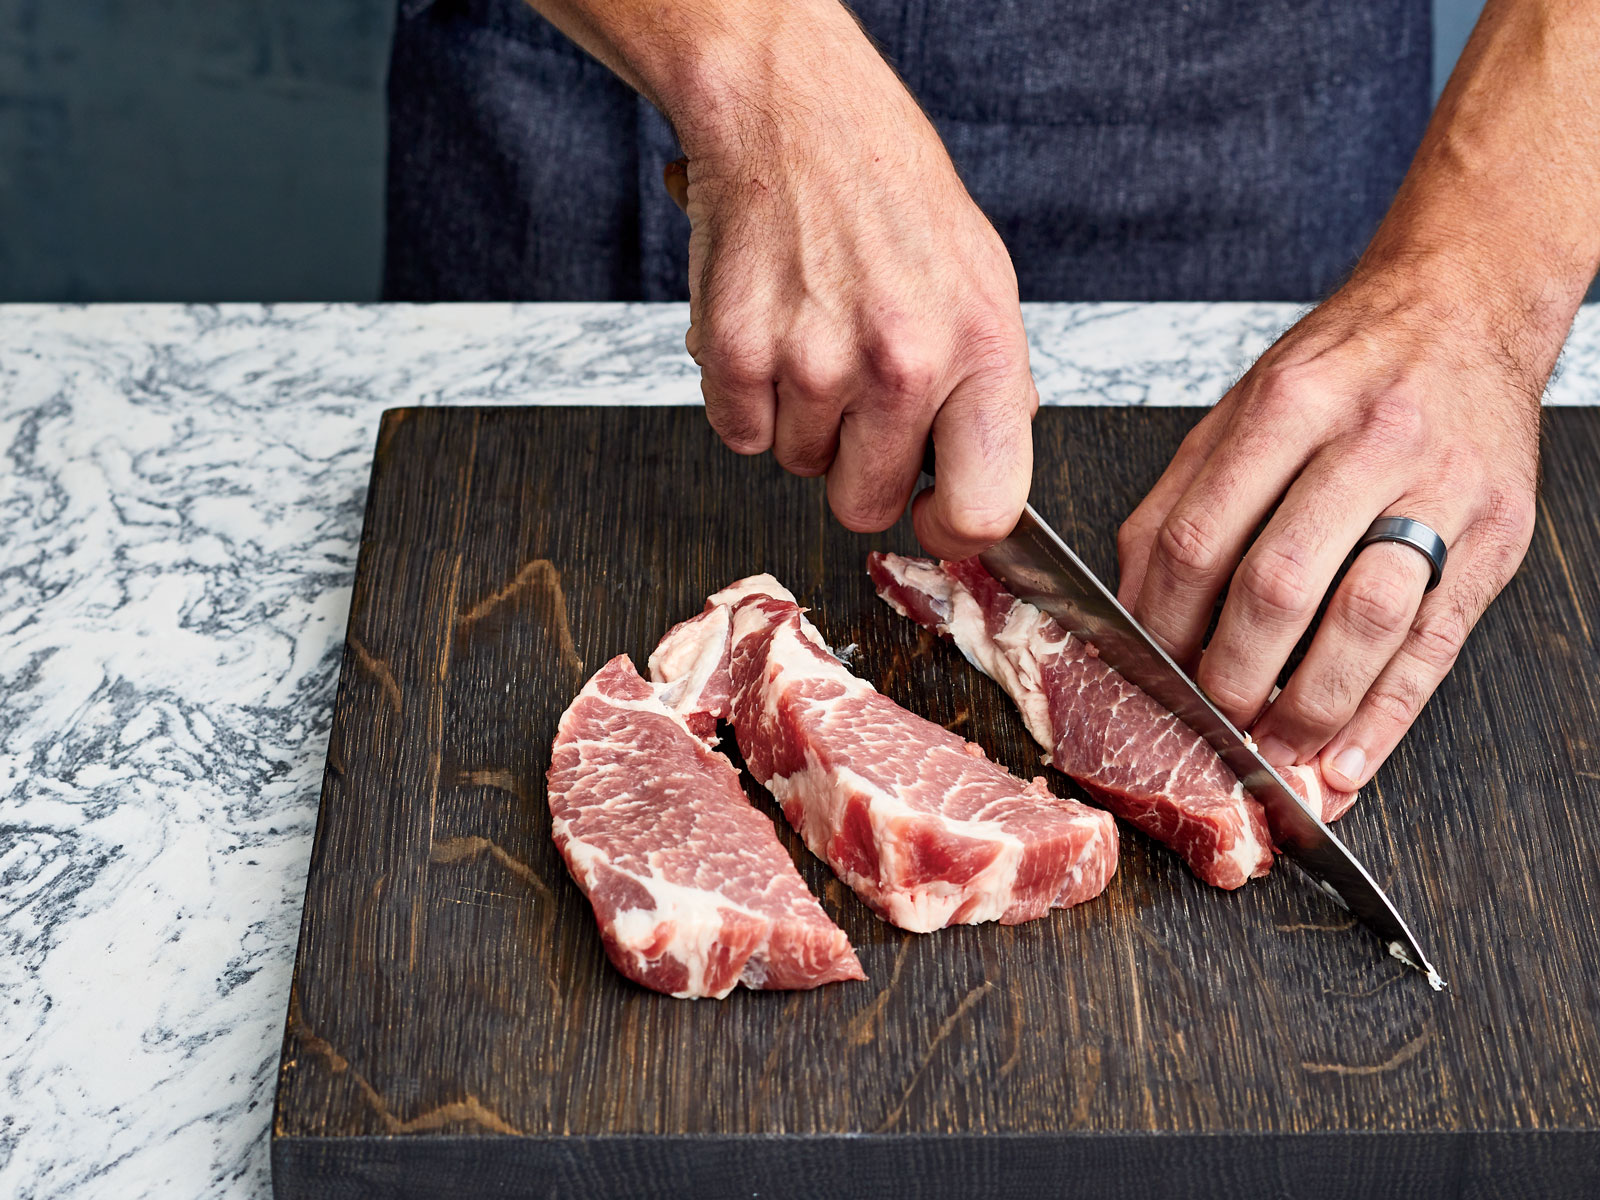 6 Things to Ask Your Butcher Next Time You're at the Meat Counter